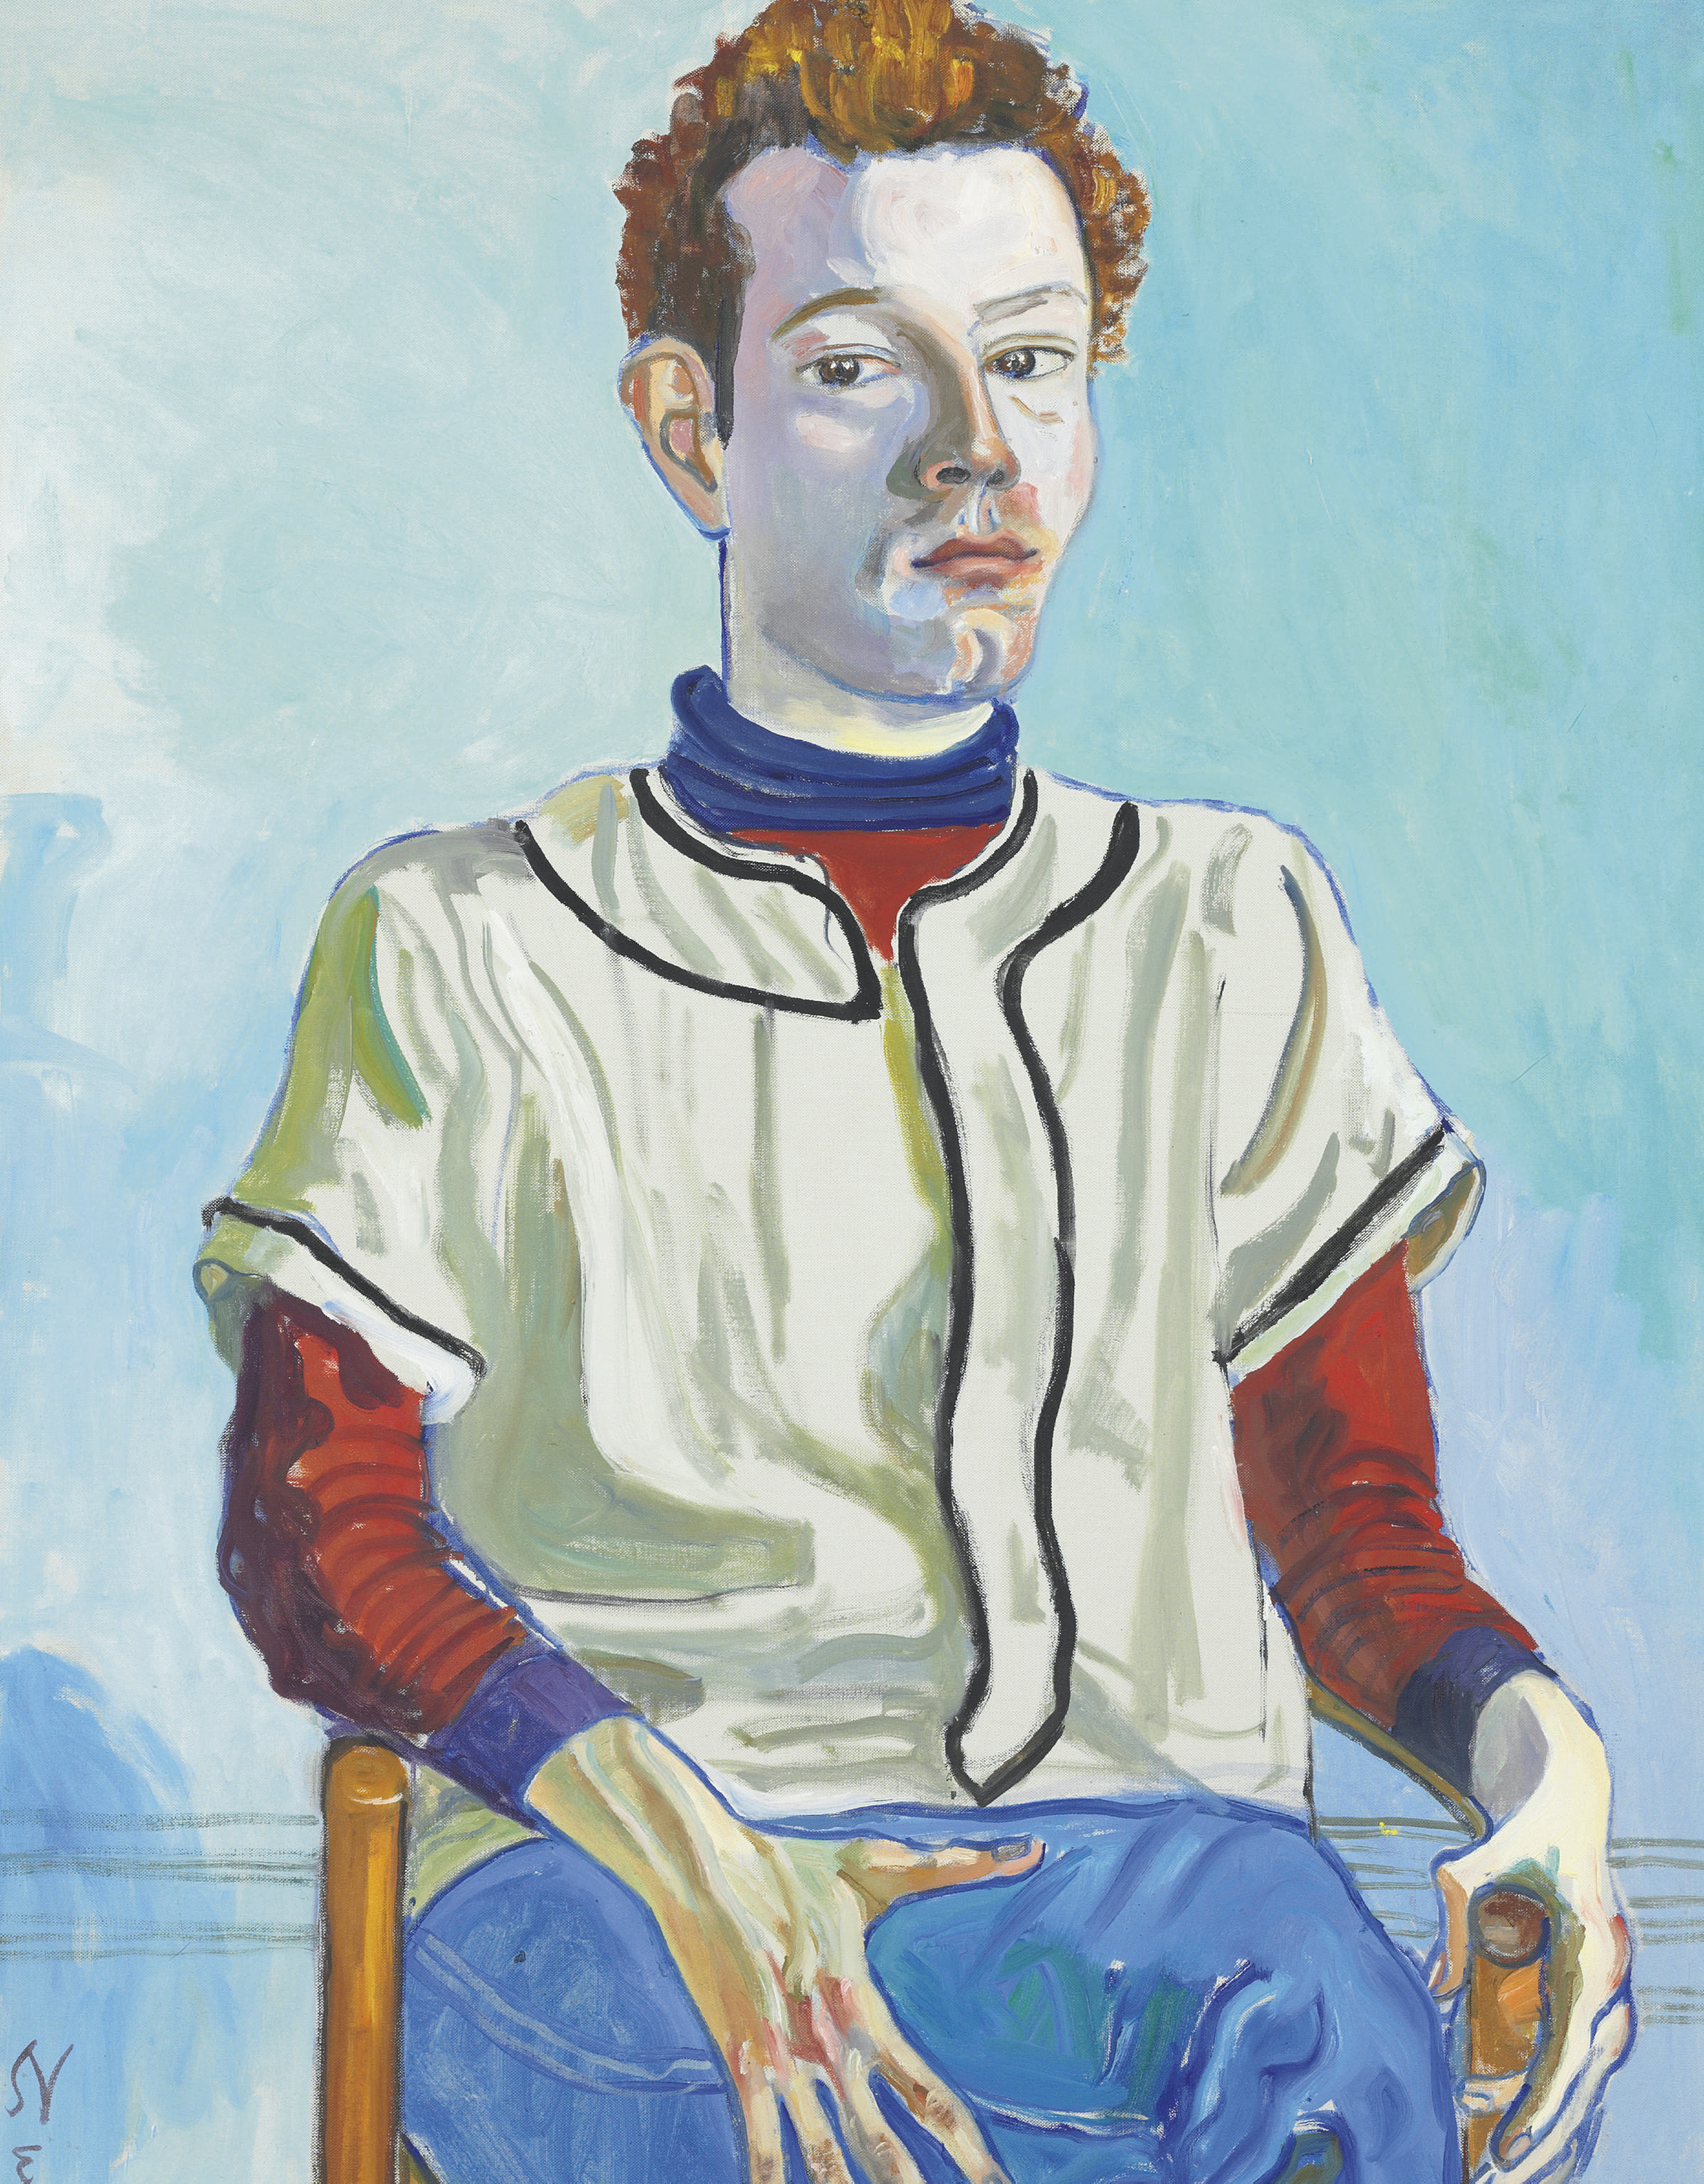 Alice Neel (1900-1984), Jackie Curtis as a Boy, 1972